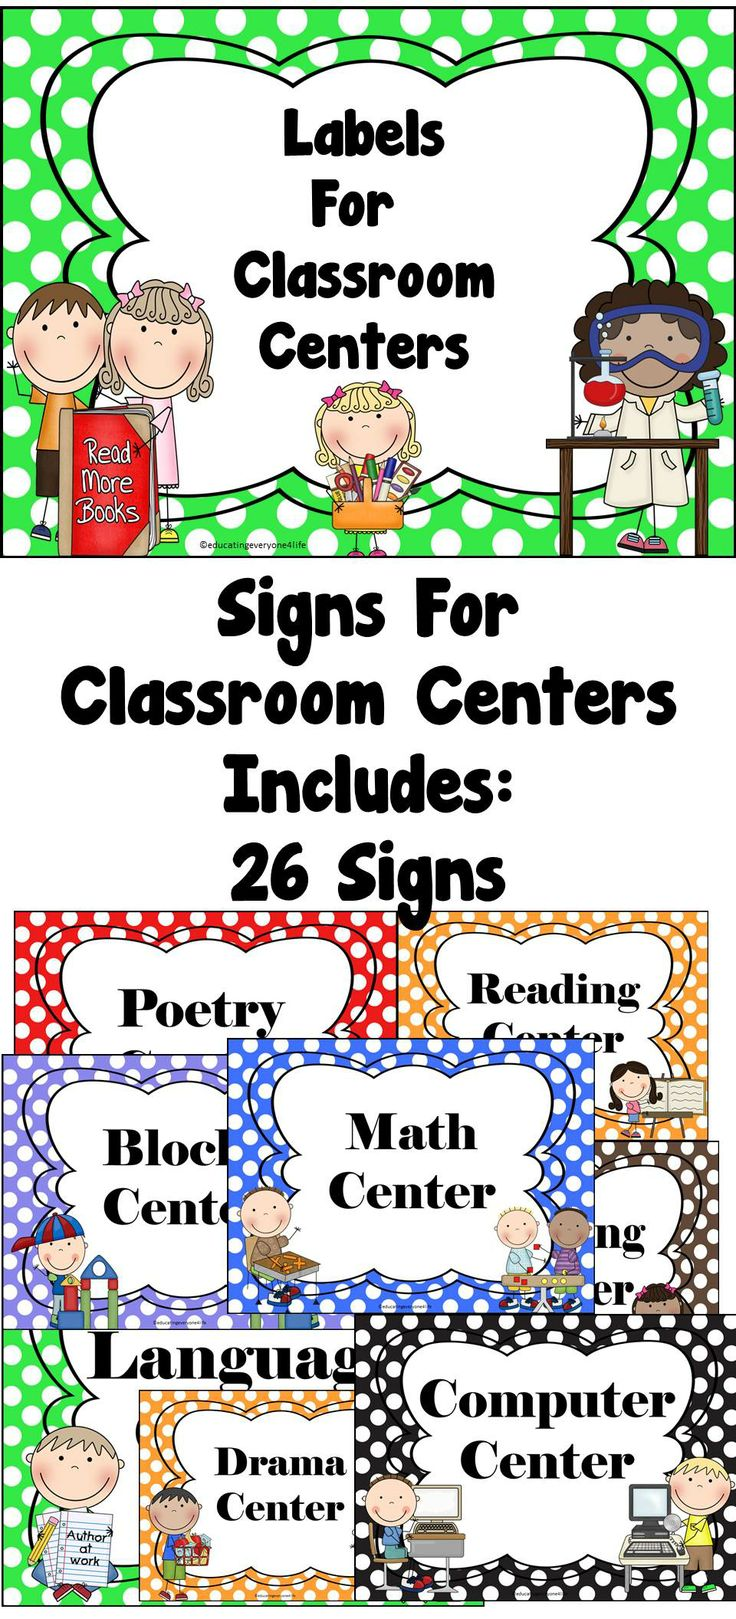 Classroom Center Signs  - A great tool for classroom organization. #TpT #Labels